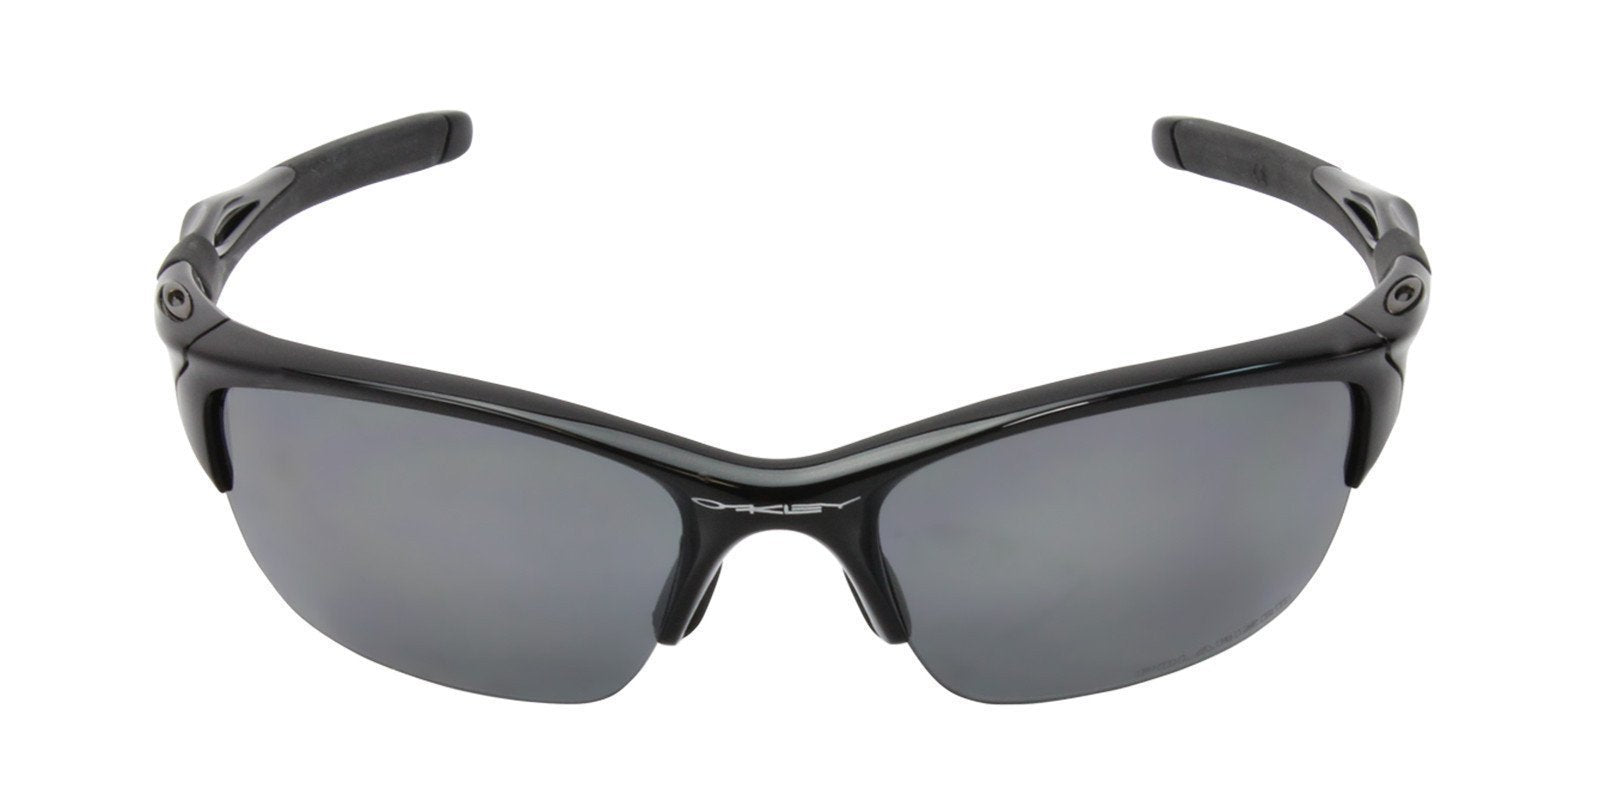 Oakley - Half Jacket 2.0 Black/Gray Rectangular Men Polarized Sunglasses - 62mm-Sunglasses-Designer Eyes